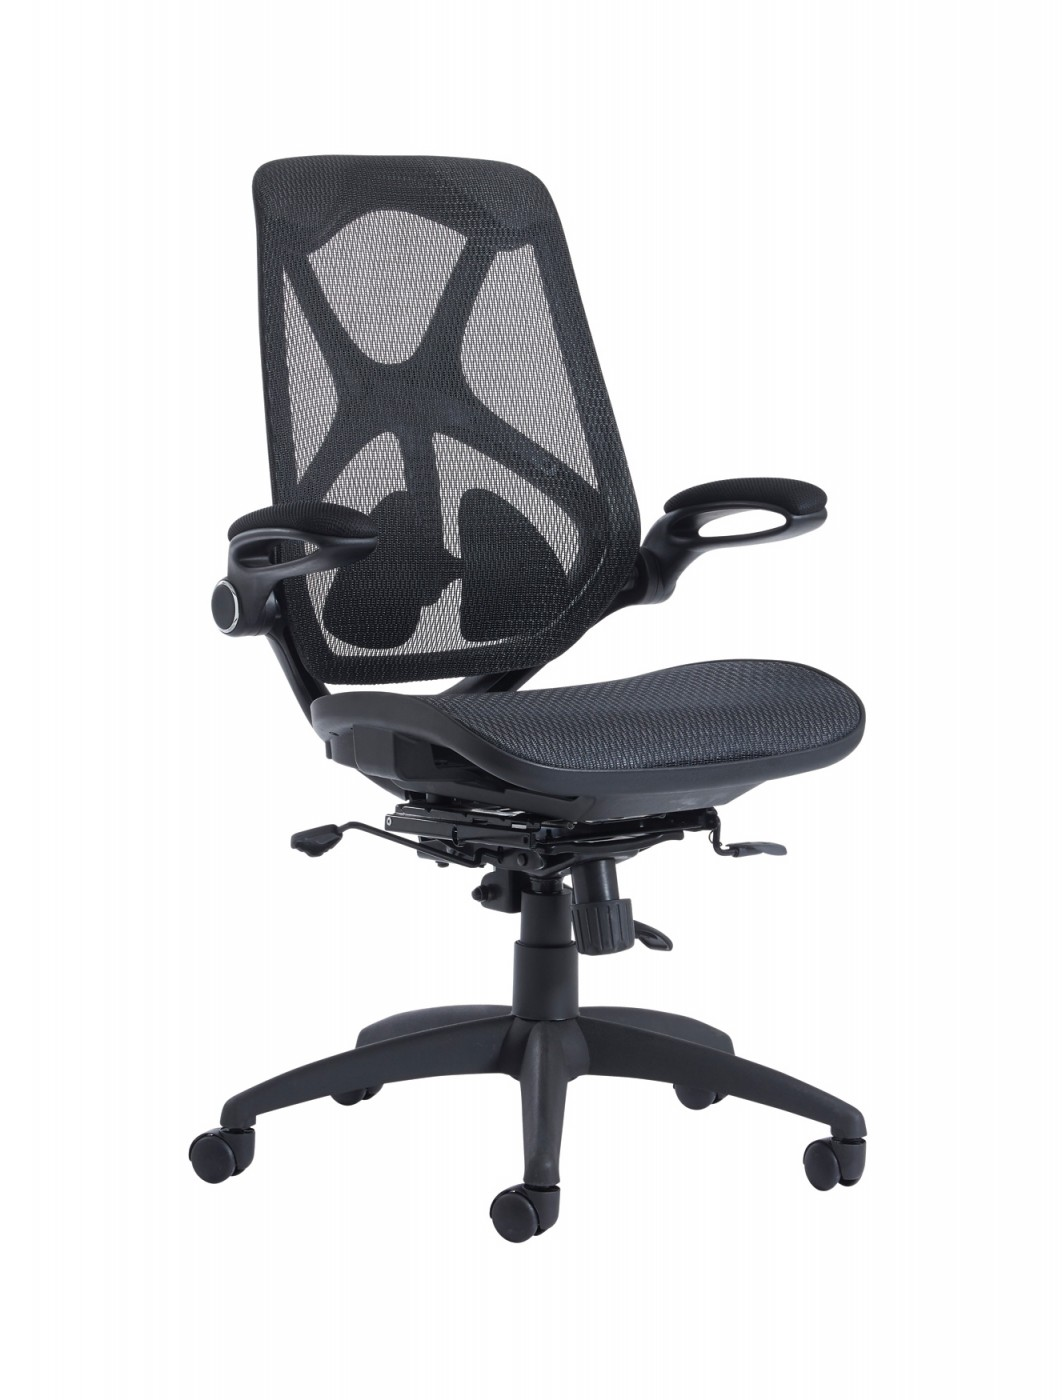 office chair you sit backwards kitchen table and chairs with wheels dams napier high back mesh nap300t1 121